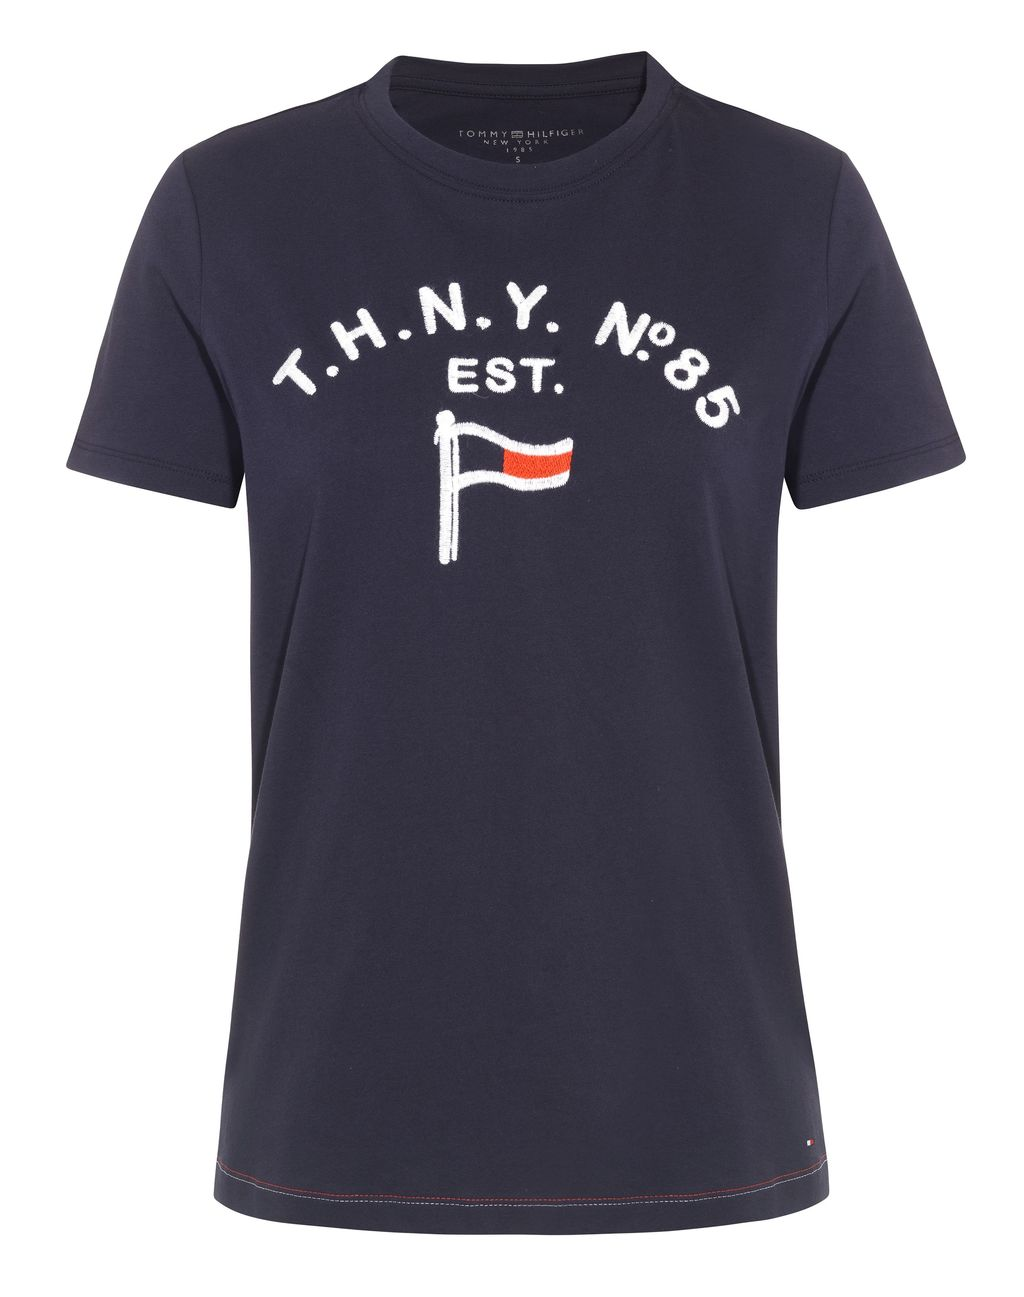 Raised Th Flag T Shirt, Navy - style: t-shirt; secondary colour: white; predominant colour: navy; occasions: casual; length: standard; fibres: cotton - 100%; fit: body skimming; neckline: crew; sleeve length: short sleeve; sleeve style: standard; pattern type: fabric; texture group: jersey - stretchy/drapey; pattern: graphic/slogan; multicoloured: multicoloured; season: s/s 2016; wardrobe: highlight